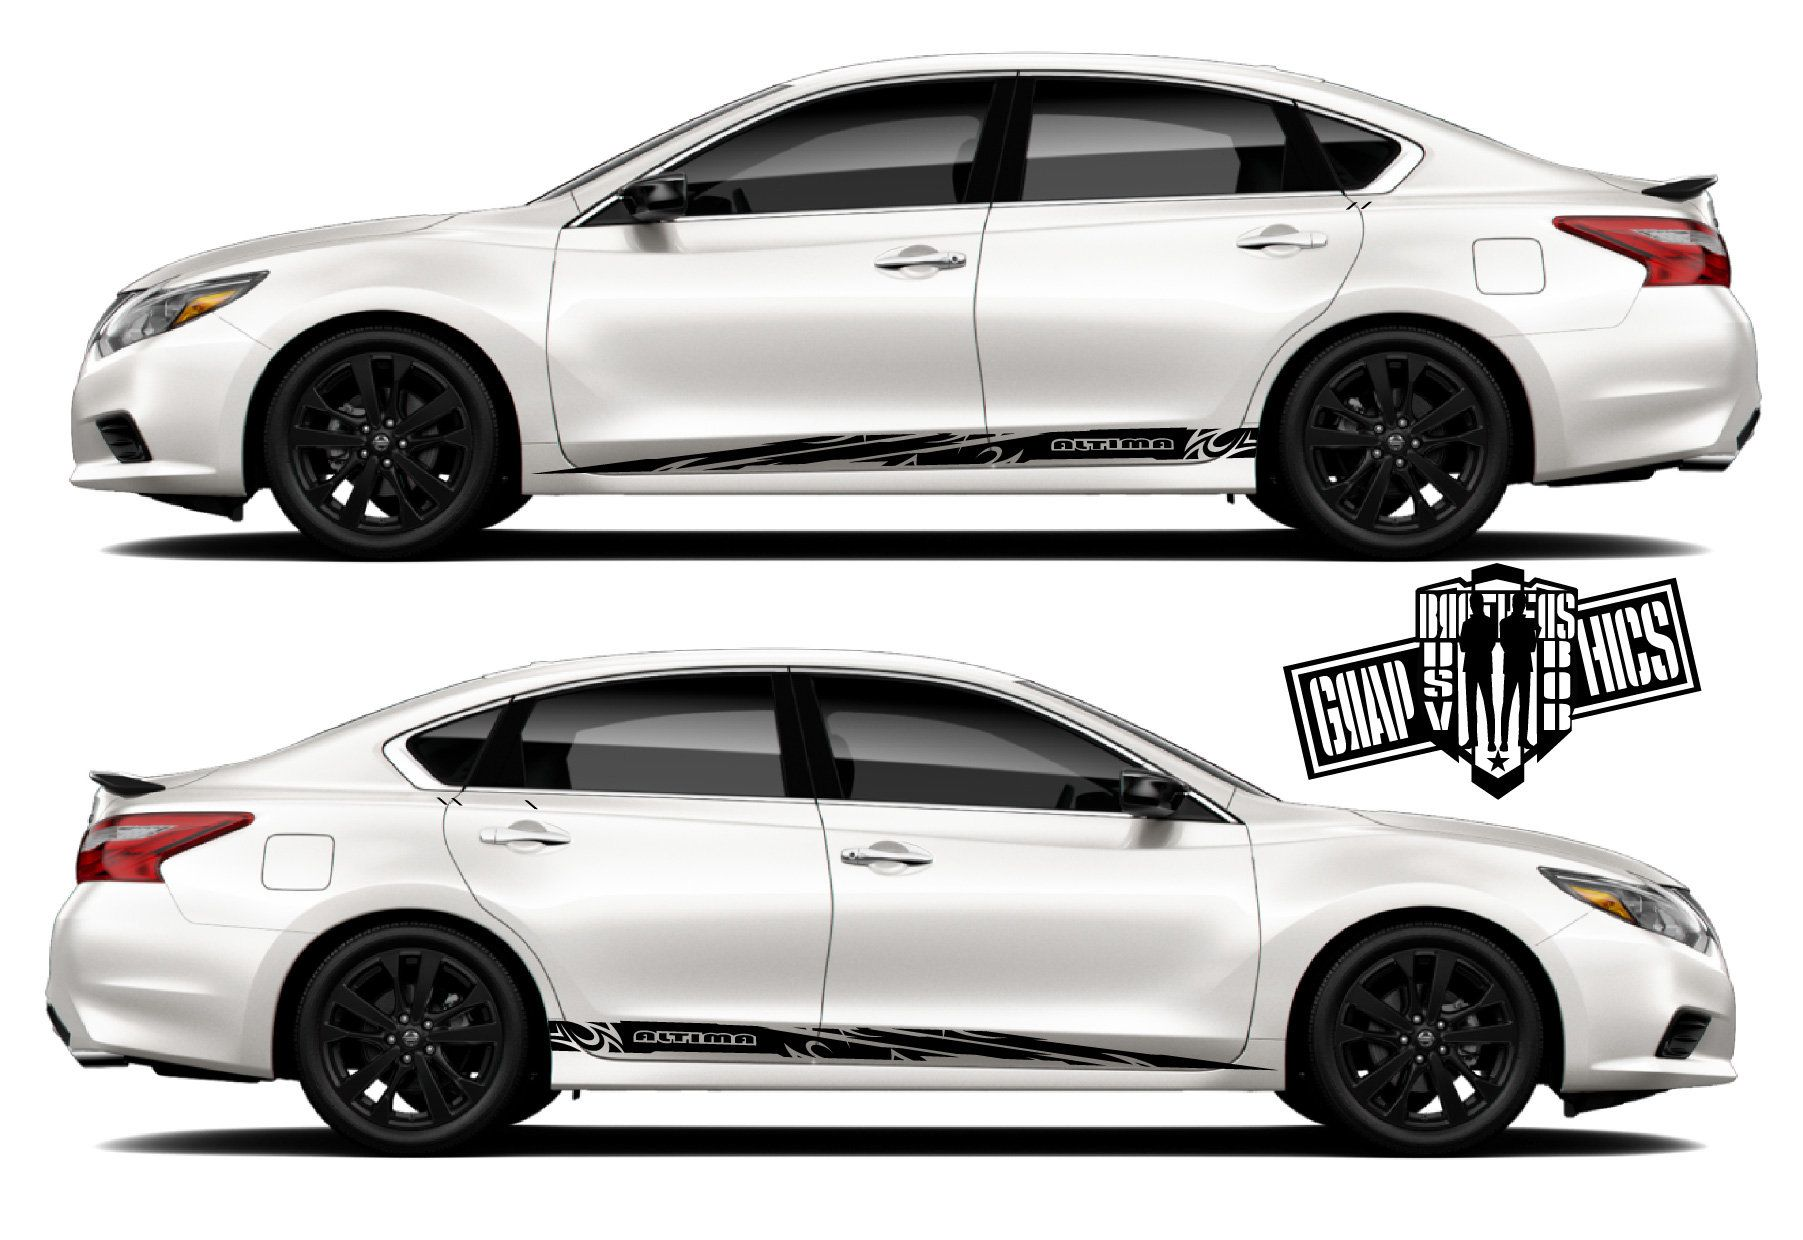 2x Rear Bed Decal Sticker Kit For Nissan Altima Sport Stripes Etsy Nissan Altima Altima Stripe Kit